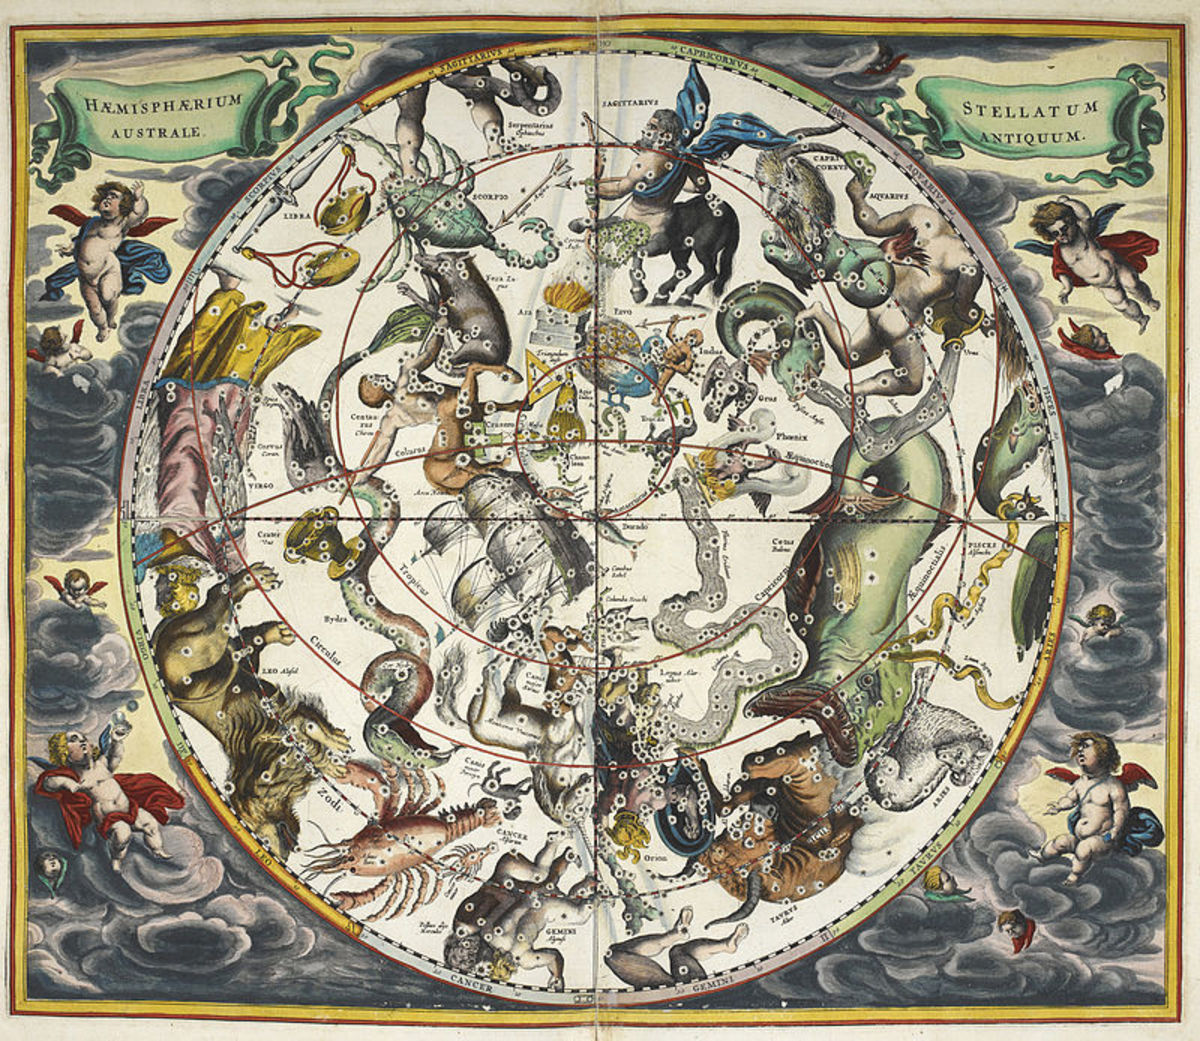 This 17th century star map from the British Museum demonstrates a mixture of scientific observation and superstition. The constellations are correctly plotted, but with additional details of astrological significance